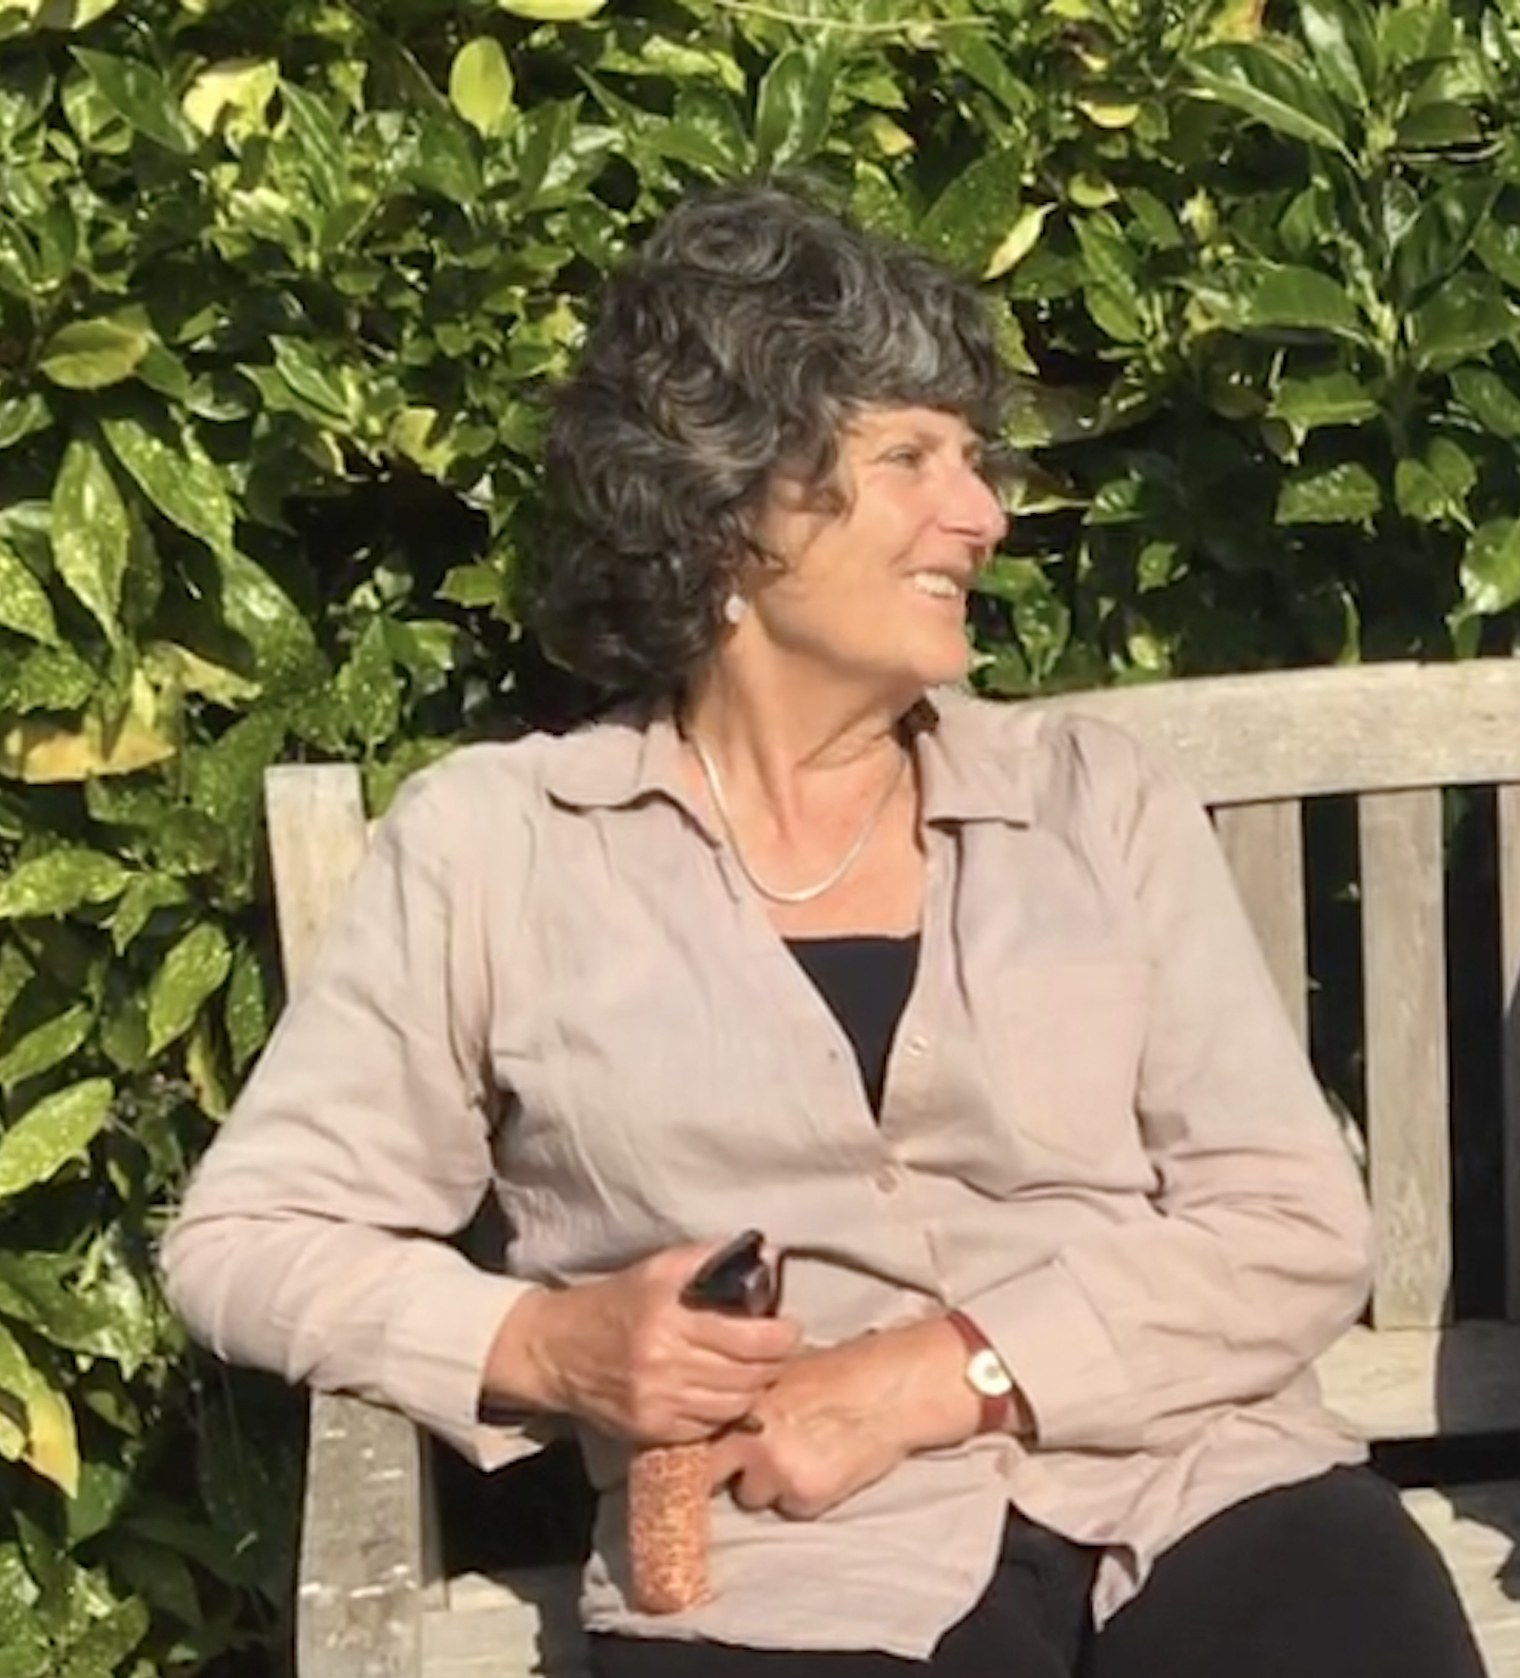 A photo of Sue Bamford sitting on a bench smiling away from the camera